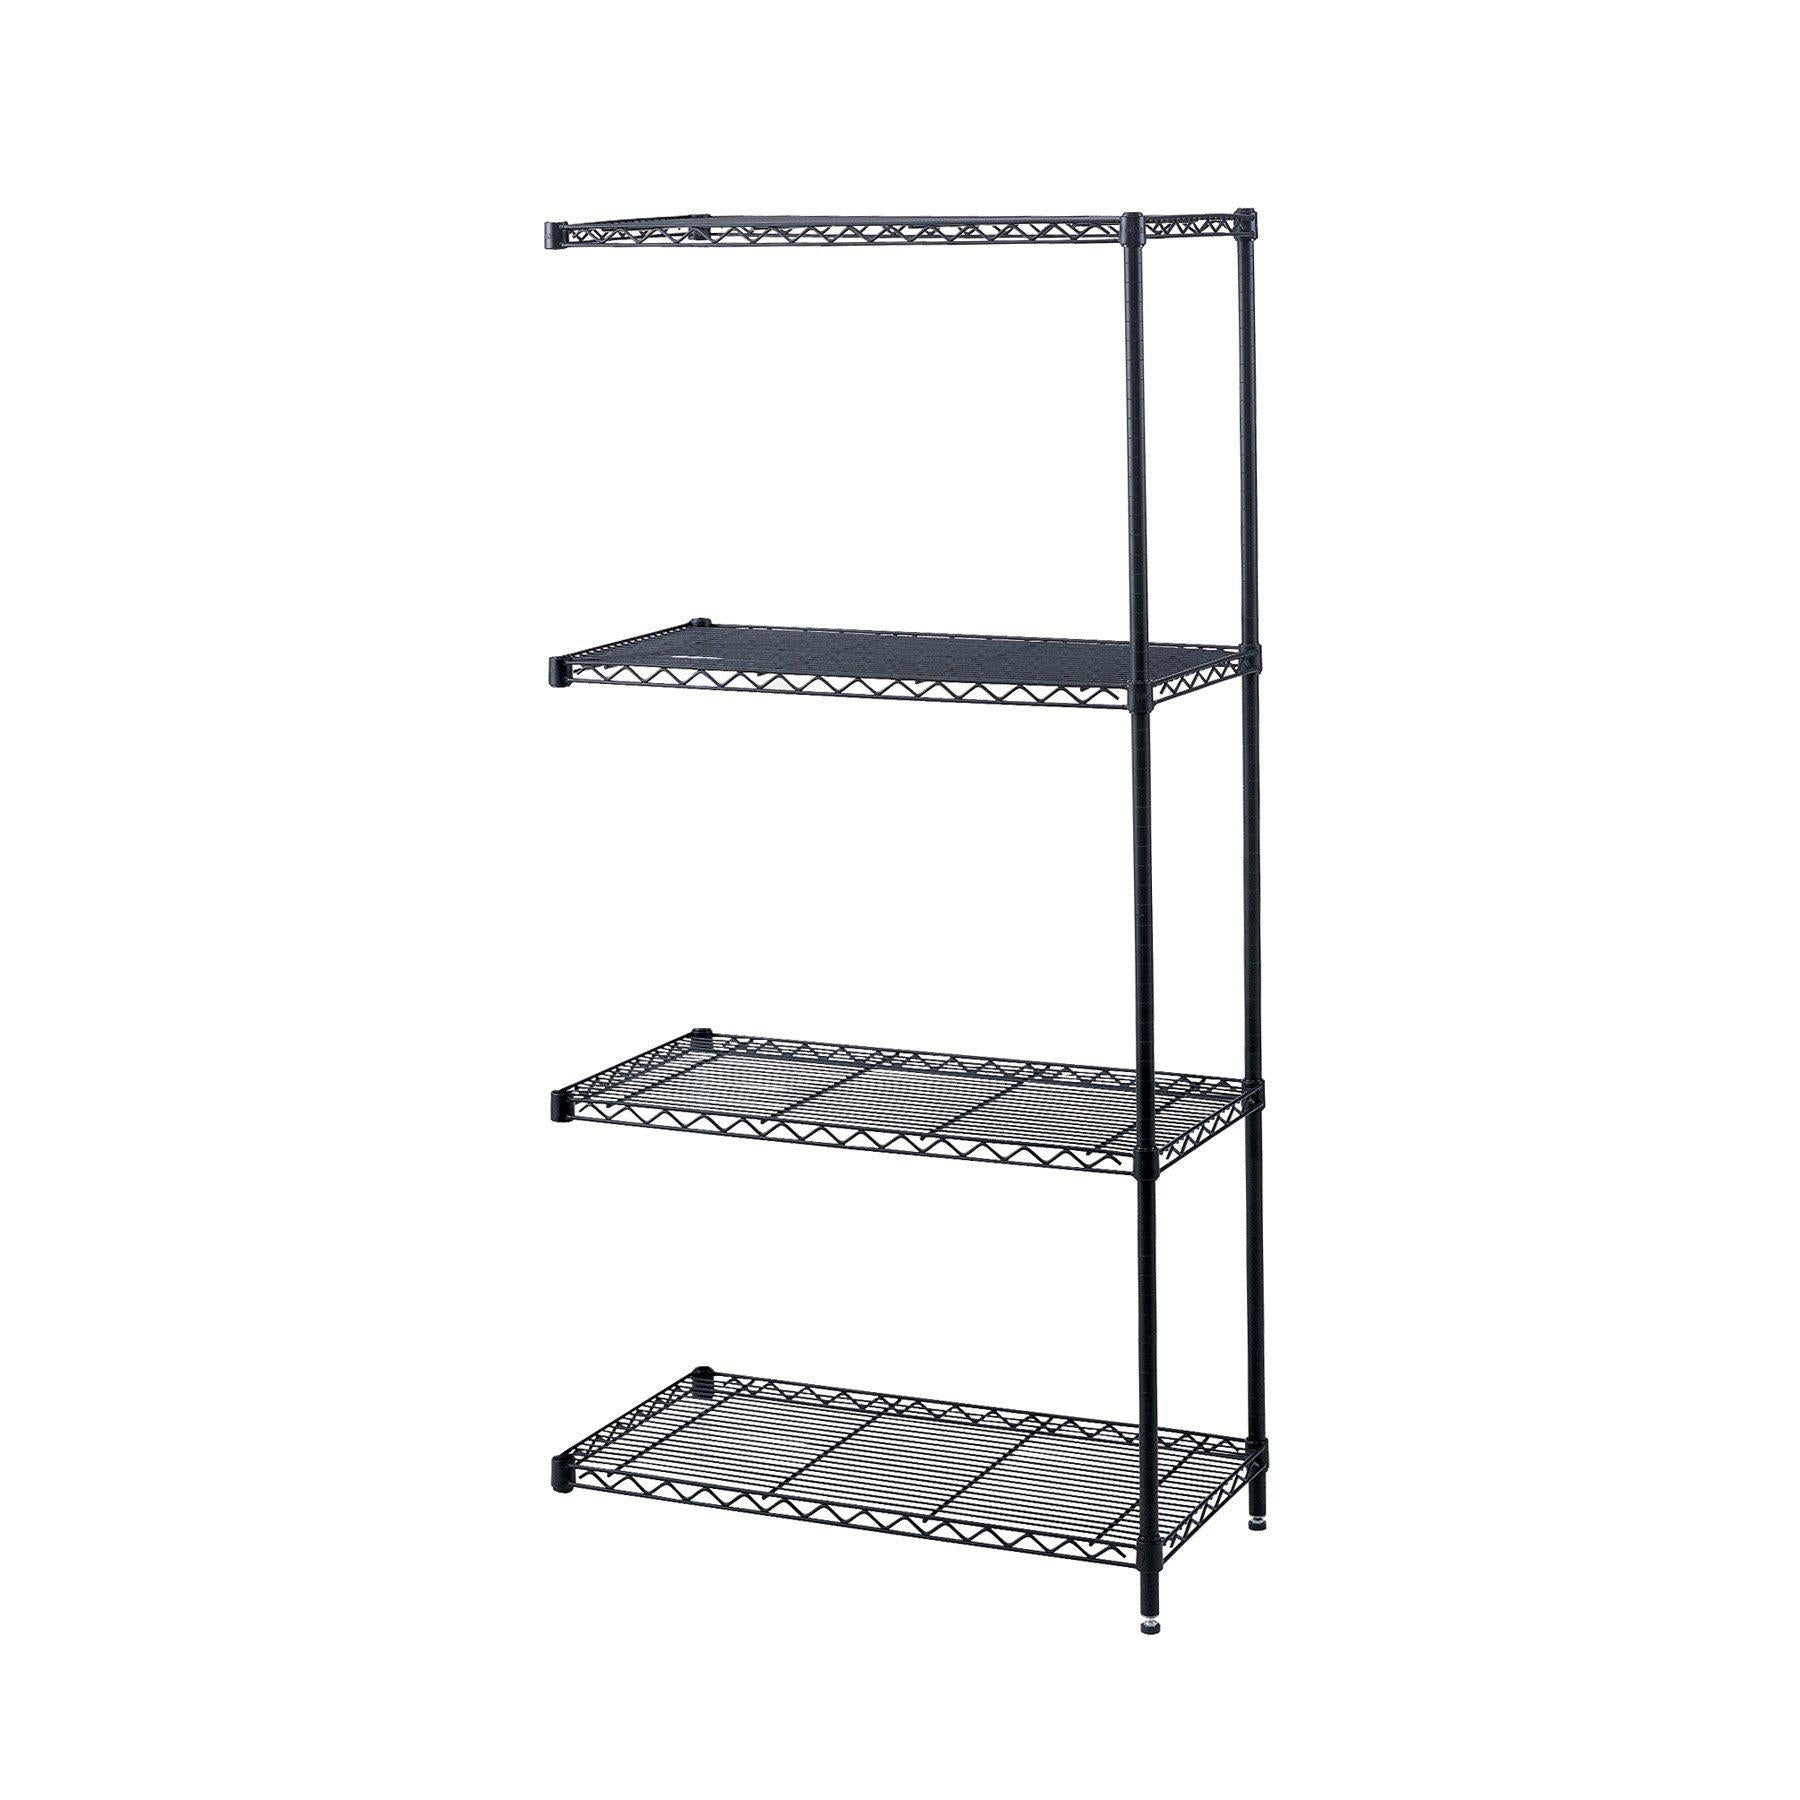 Industrial Wire Shelving Add-On Unit, 48 x 18""